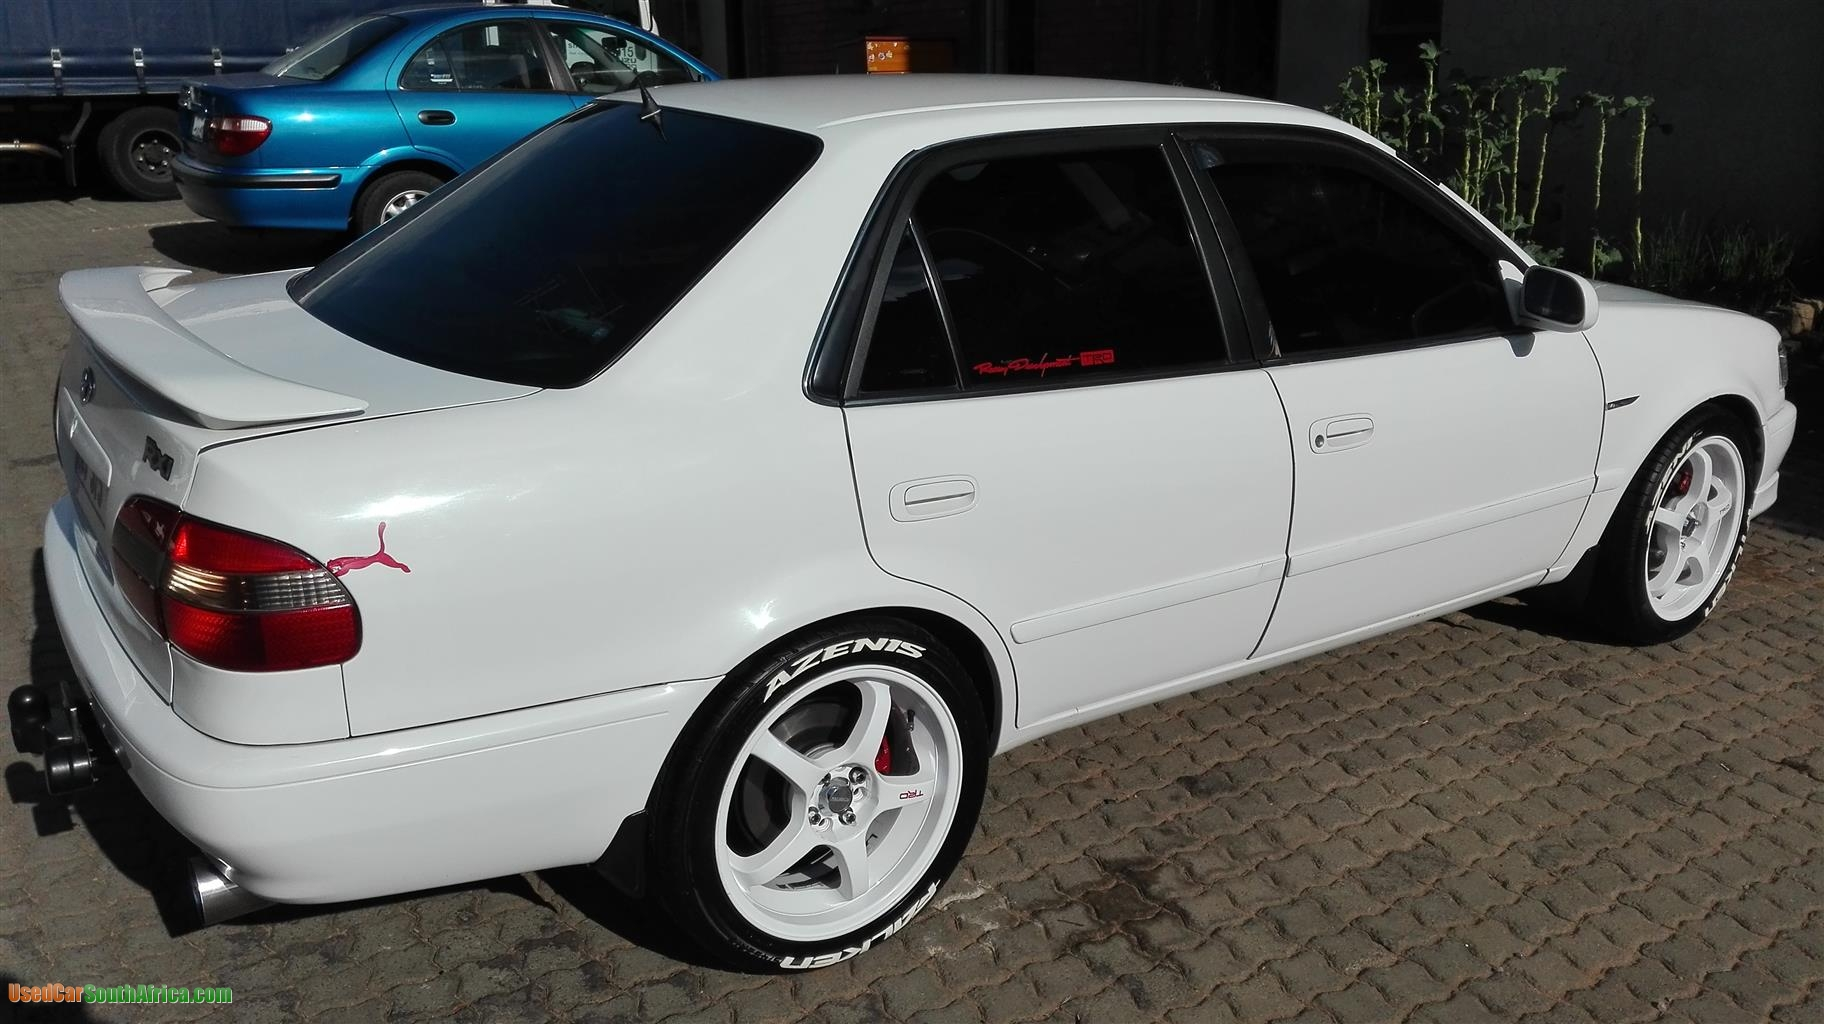 Used Toyota Corolla 2010 >> 2001 Toyota Corolla 1.6 used car for sale in Johannesburg South Gauteng South Africa ...